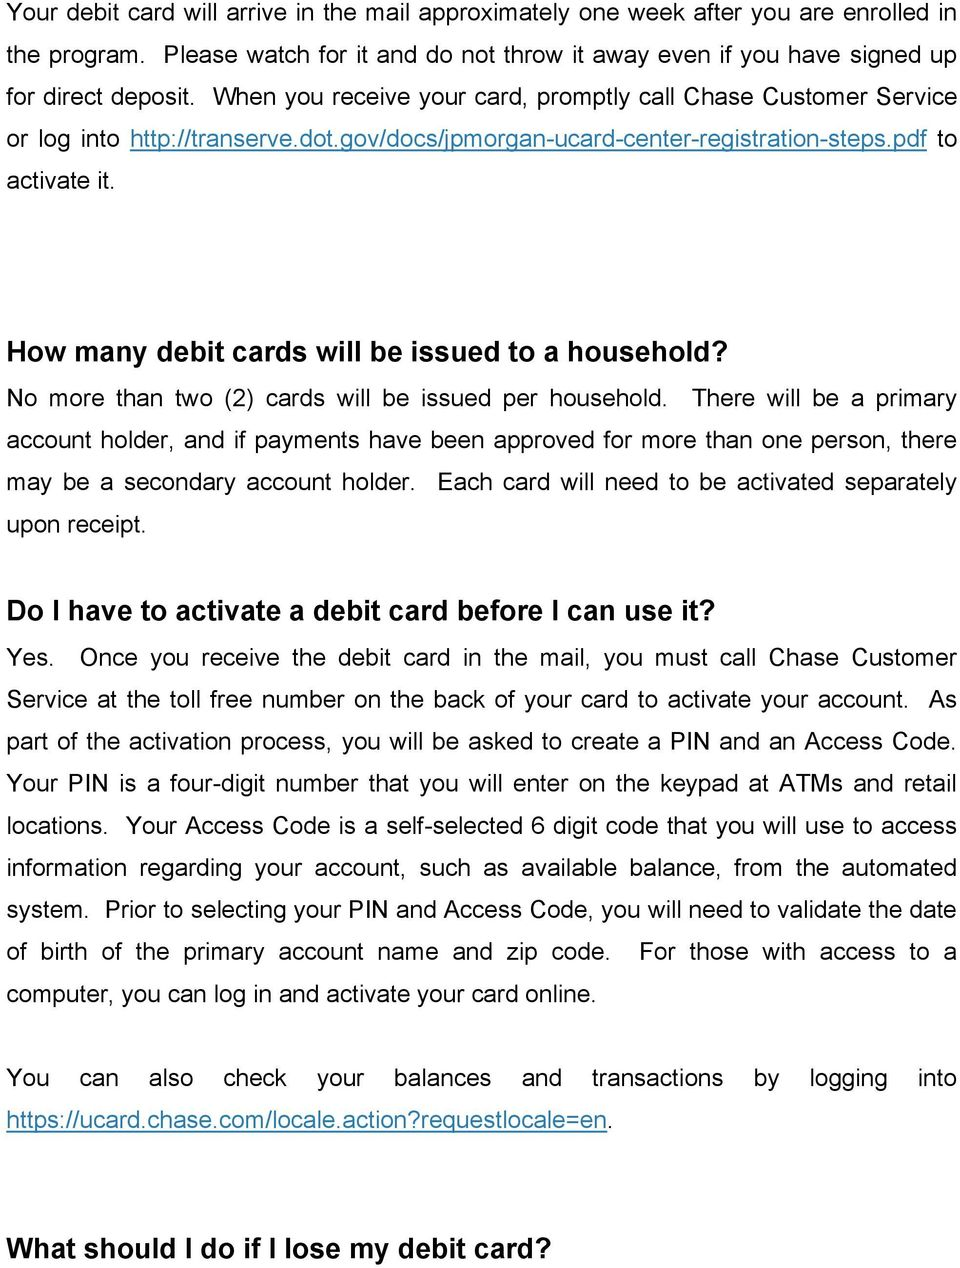 How many debit cards will be issued to a household? No more than two (2) cards will be issued per household.